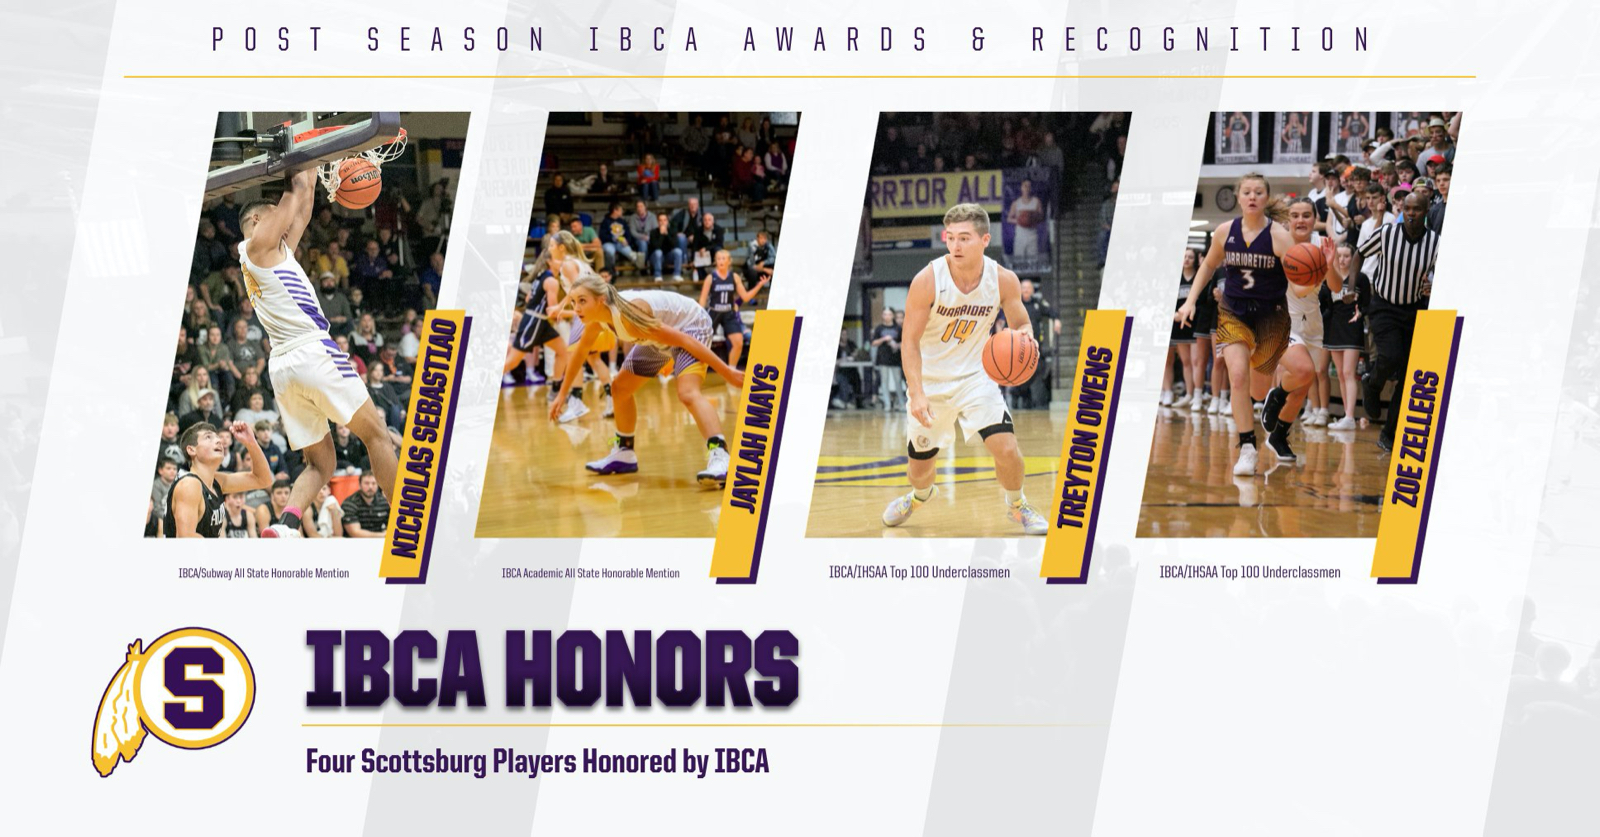 Four Scottsburg Basketball Players Honored by IBCA